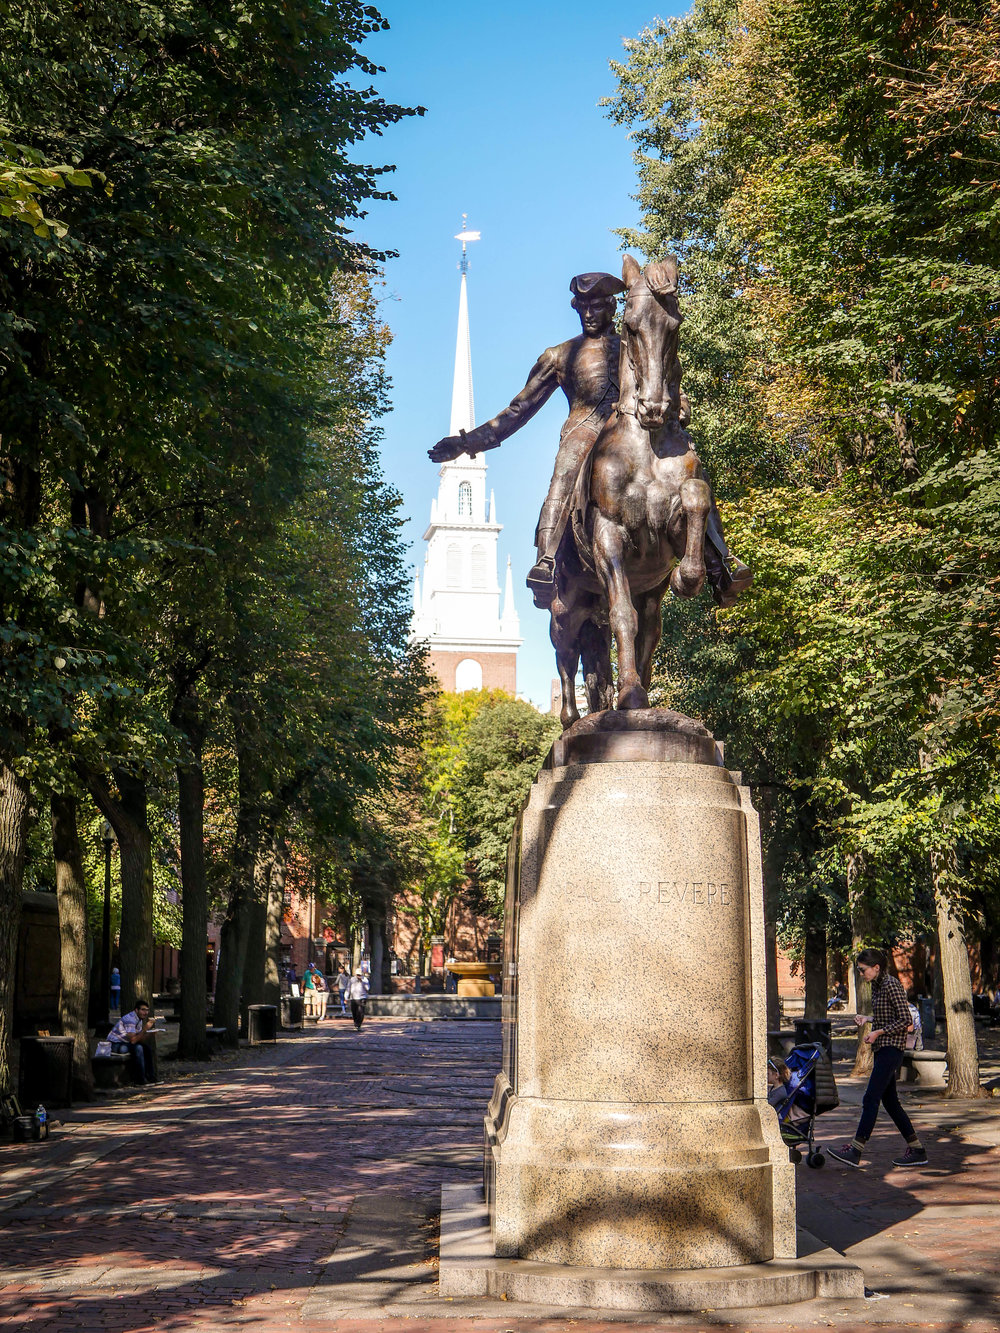 A statue of Paul Revere with Old North Church in the background.